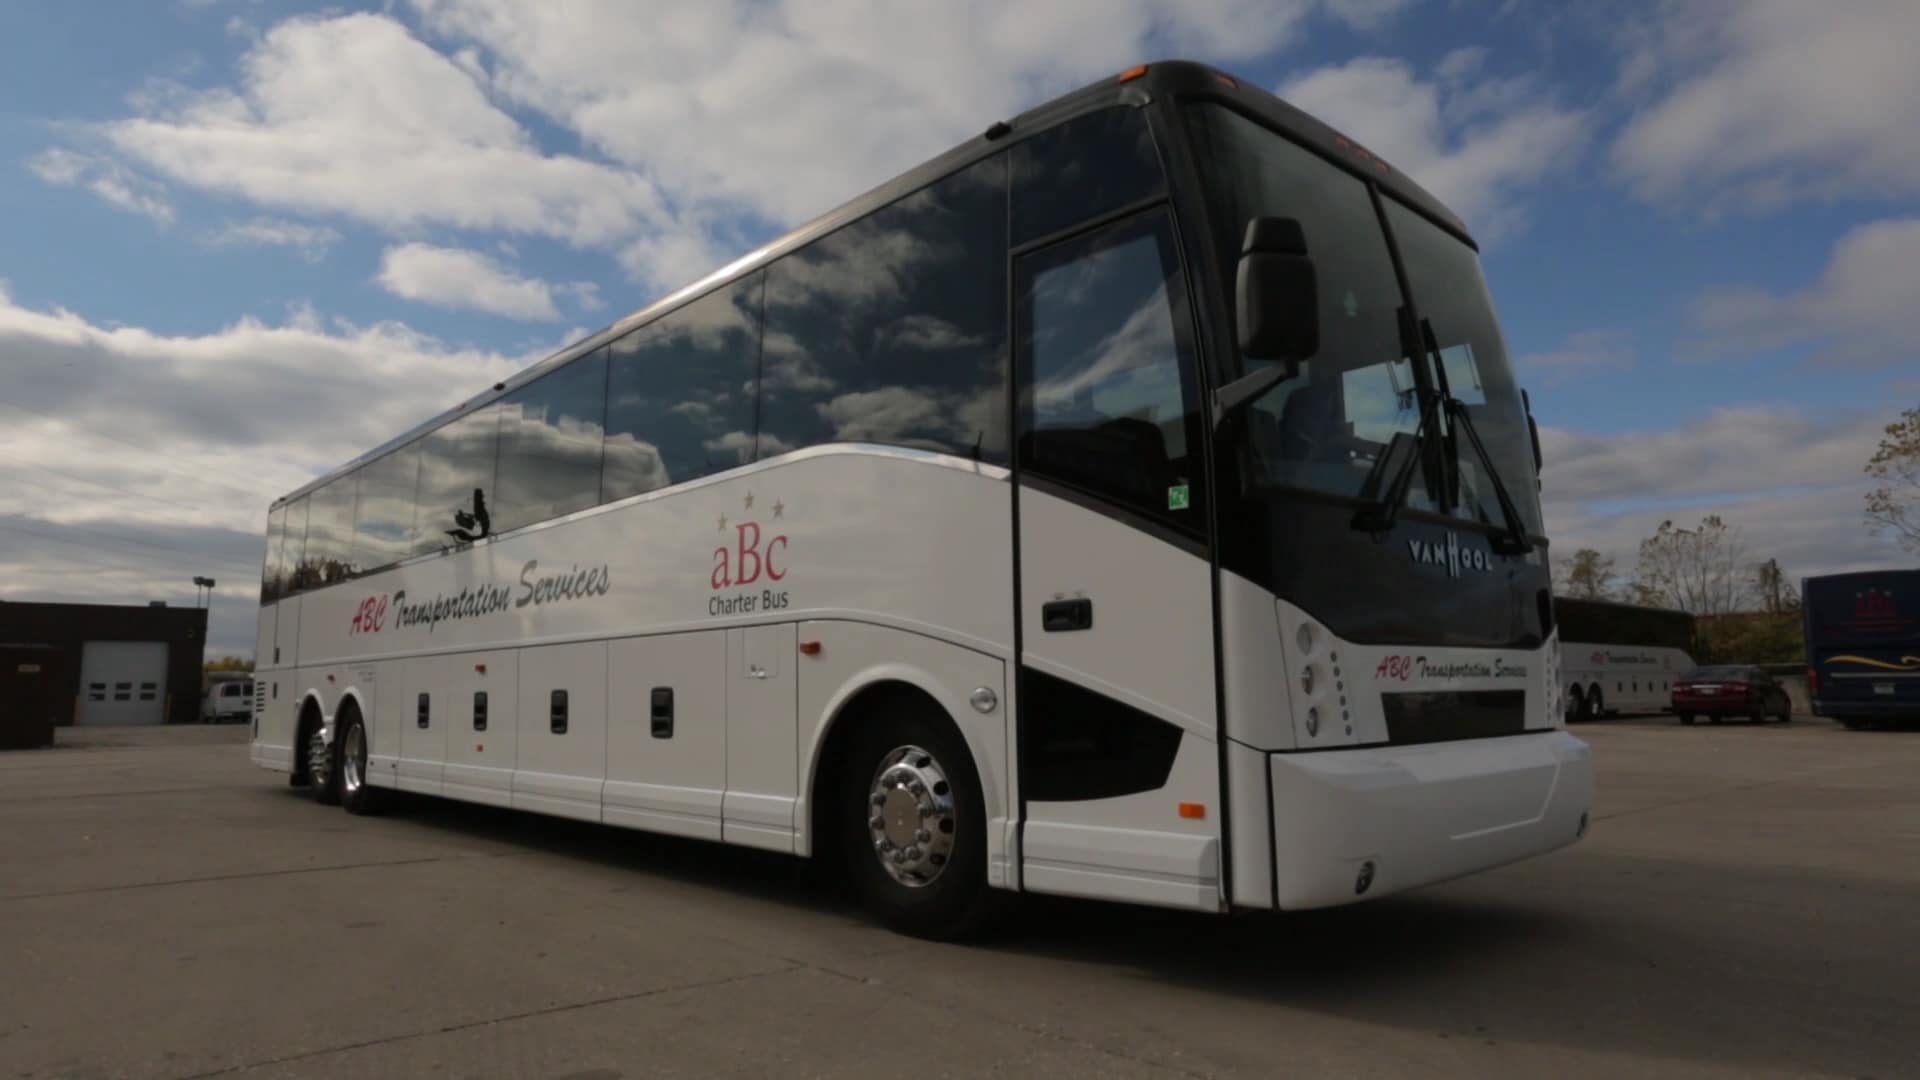 ABC Charter Bus Chicago rental